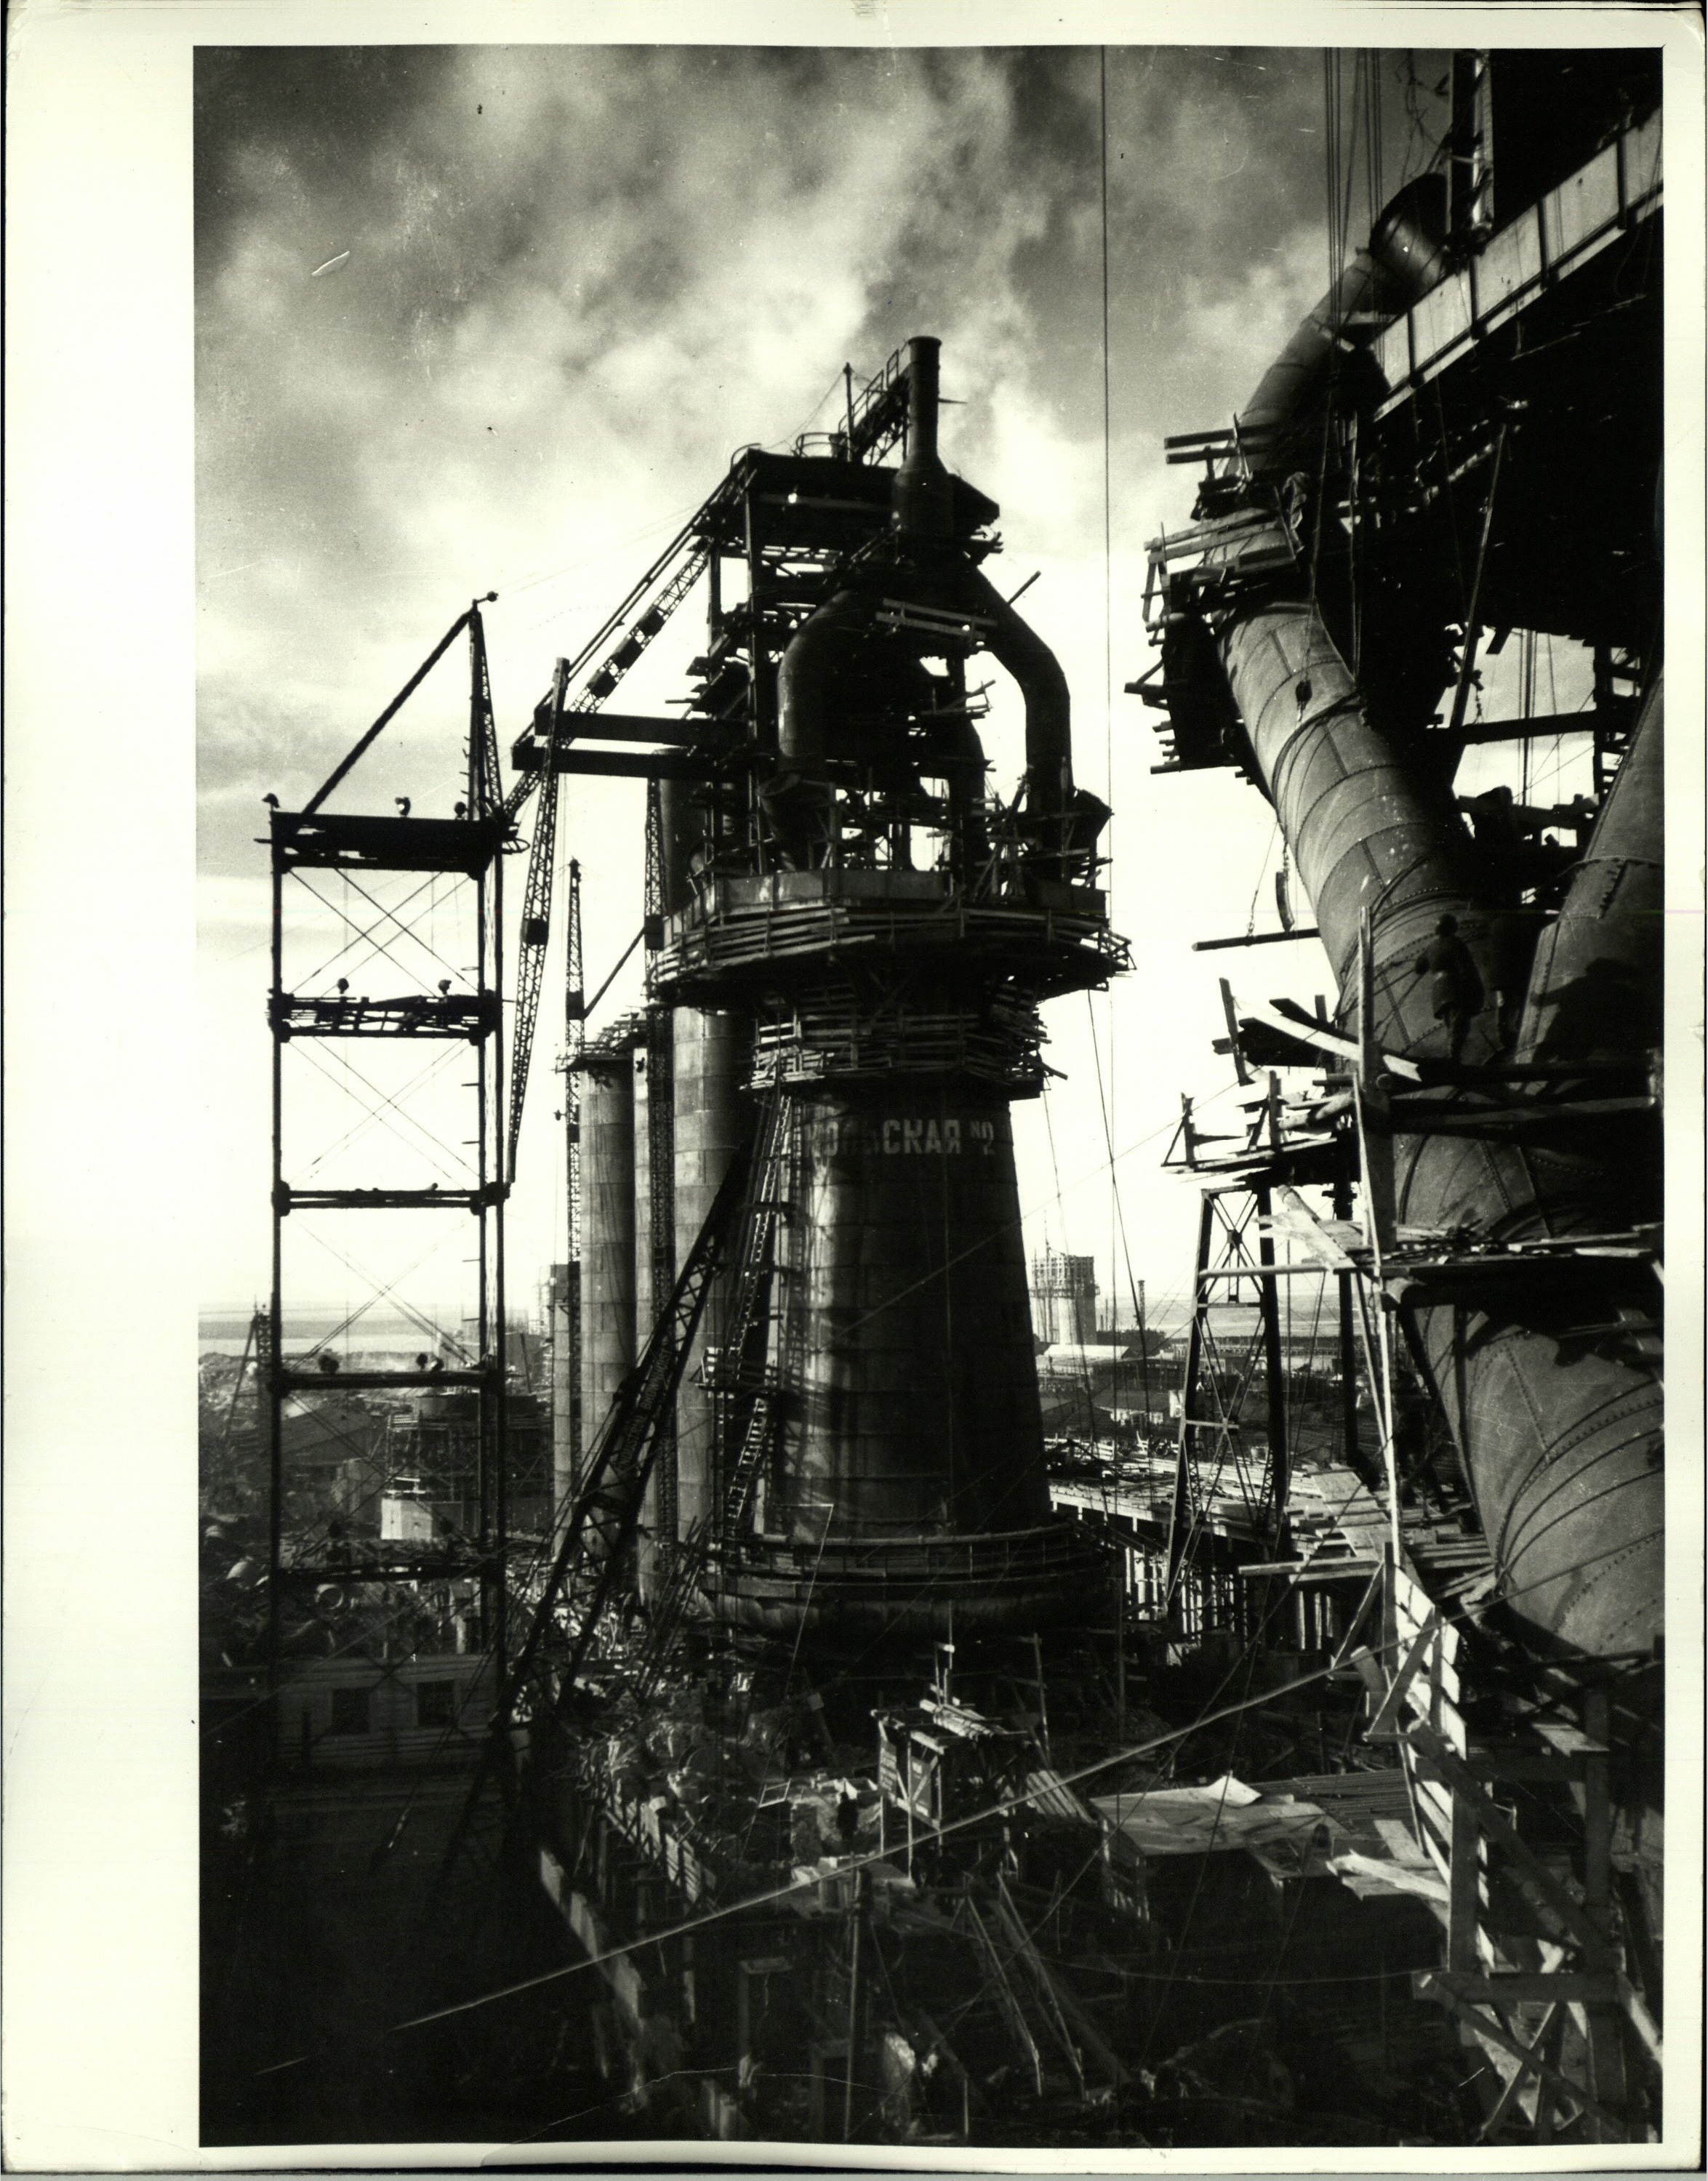 Margaret Bourke-White, Under-construction blast furnace (world's largest) at Magnitogorsk Metallurgical Industrial Complex (Magnitogorsk, 1931)